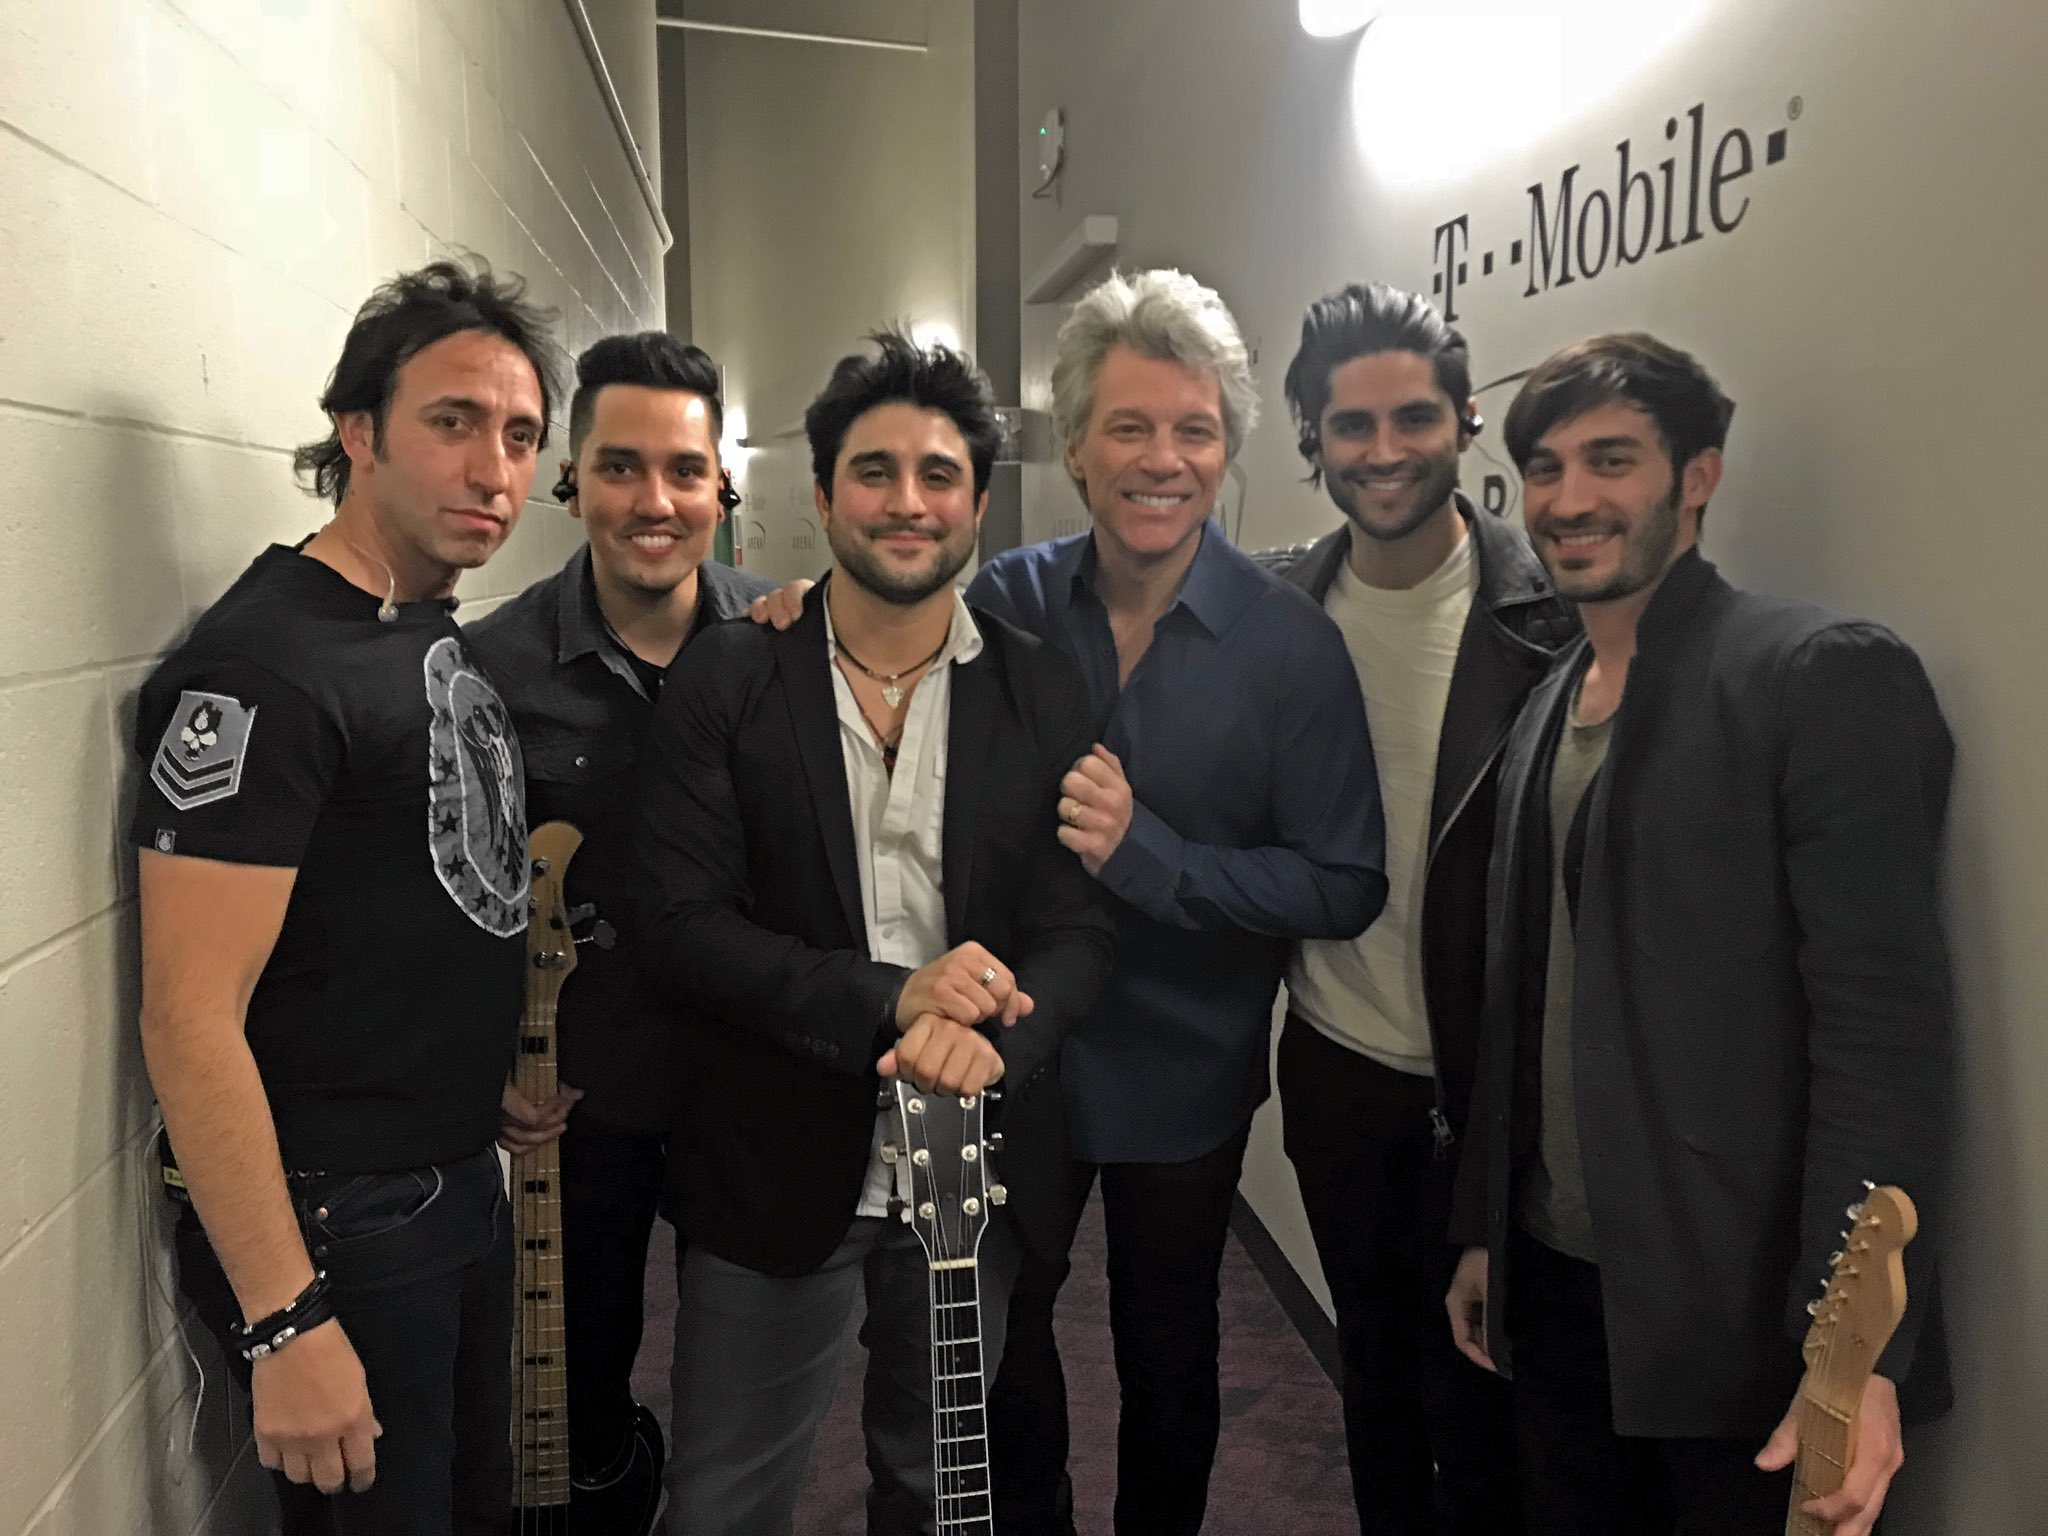 JBJ with last nights opener, @Vin_Amusic! Thanks for an amazing show, Las Vegas. #THINFStour https://t.co/6aKUxYqTcg